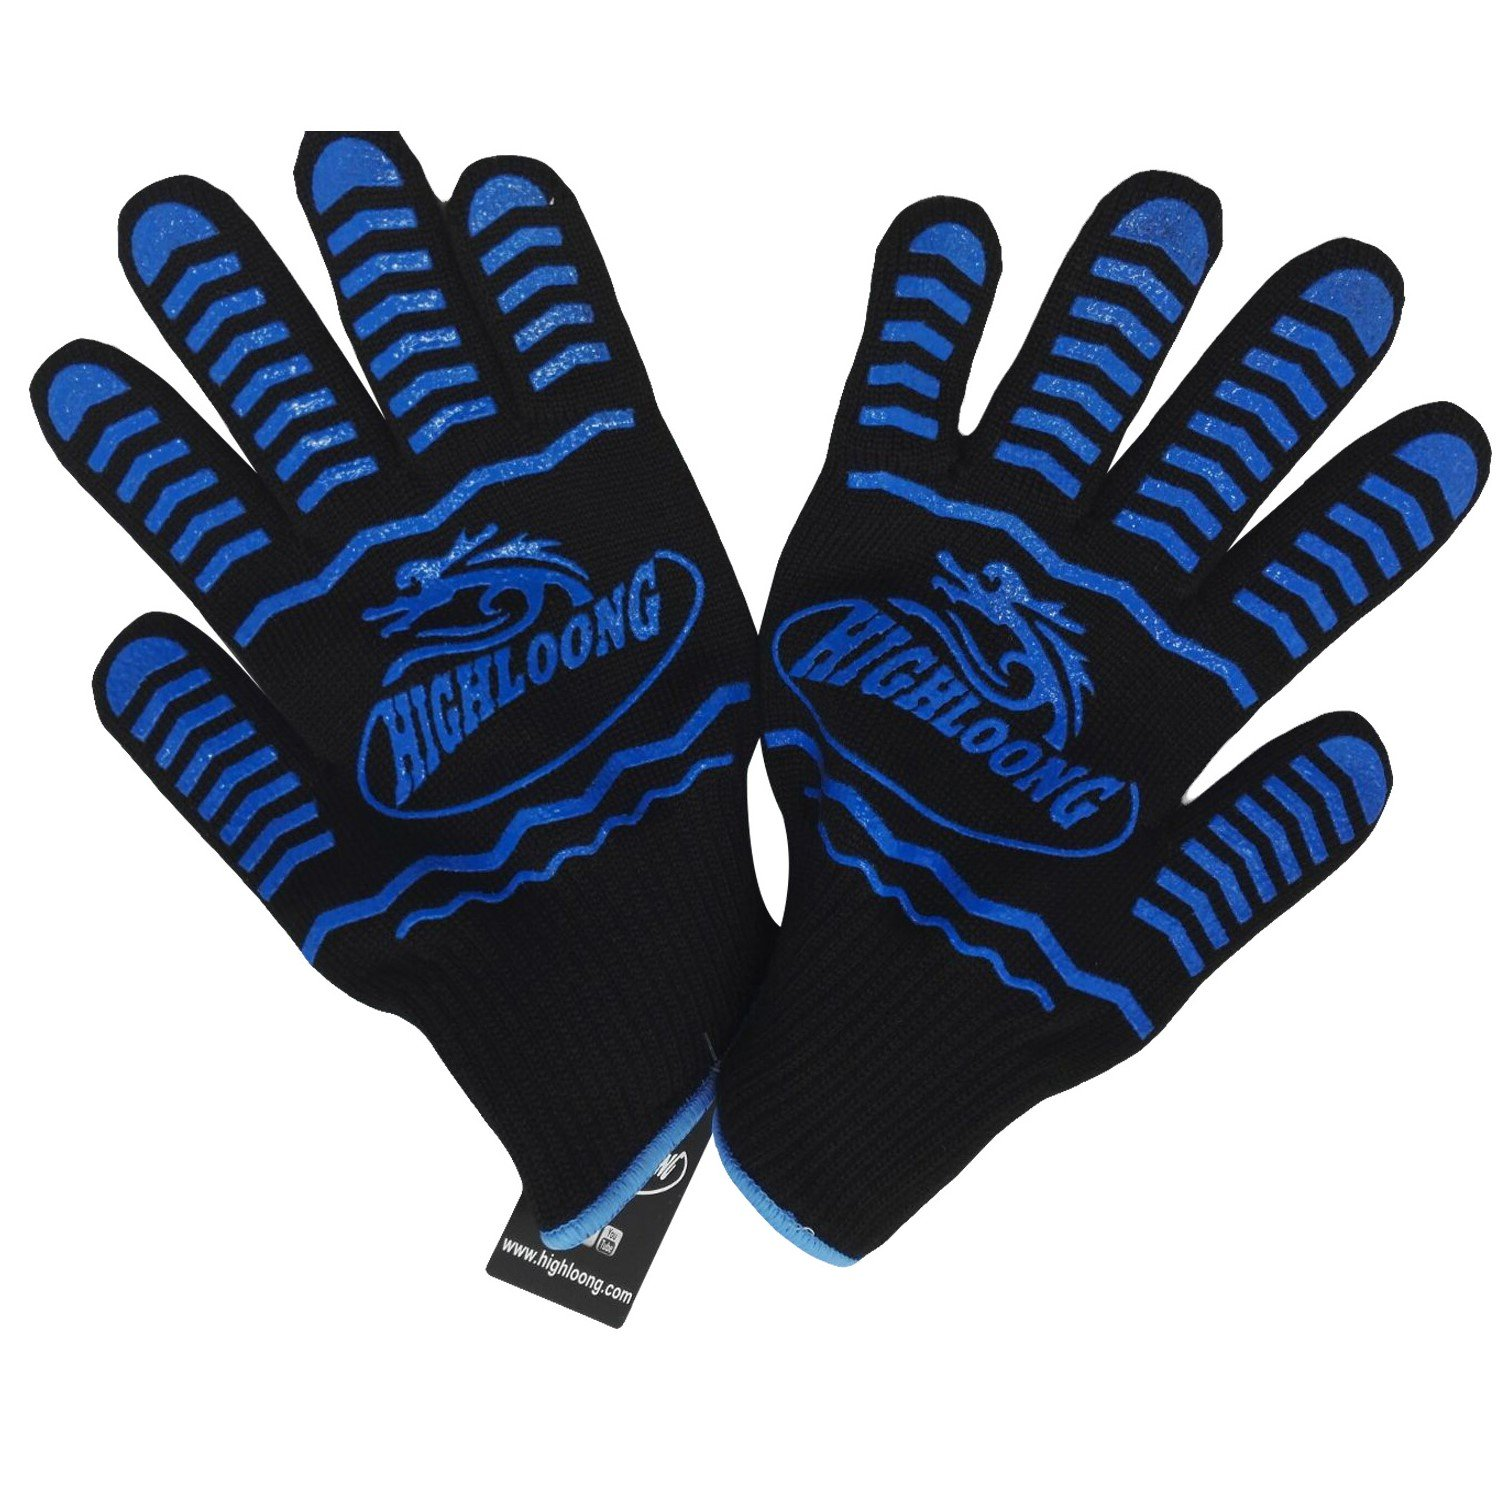 HIGHLOONG 932°F Extreme Heat Resistant BBQ Oven Safety Gloves - EN407 Certified, Thick but Light Weight for Kitchen Potholder and Outdoors-1 Pair (2 Pieces Set) (Black Long Cuff)